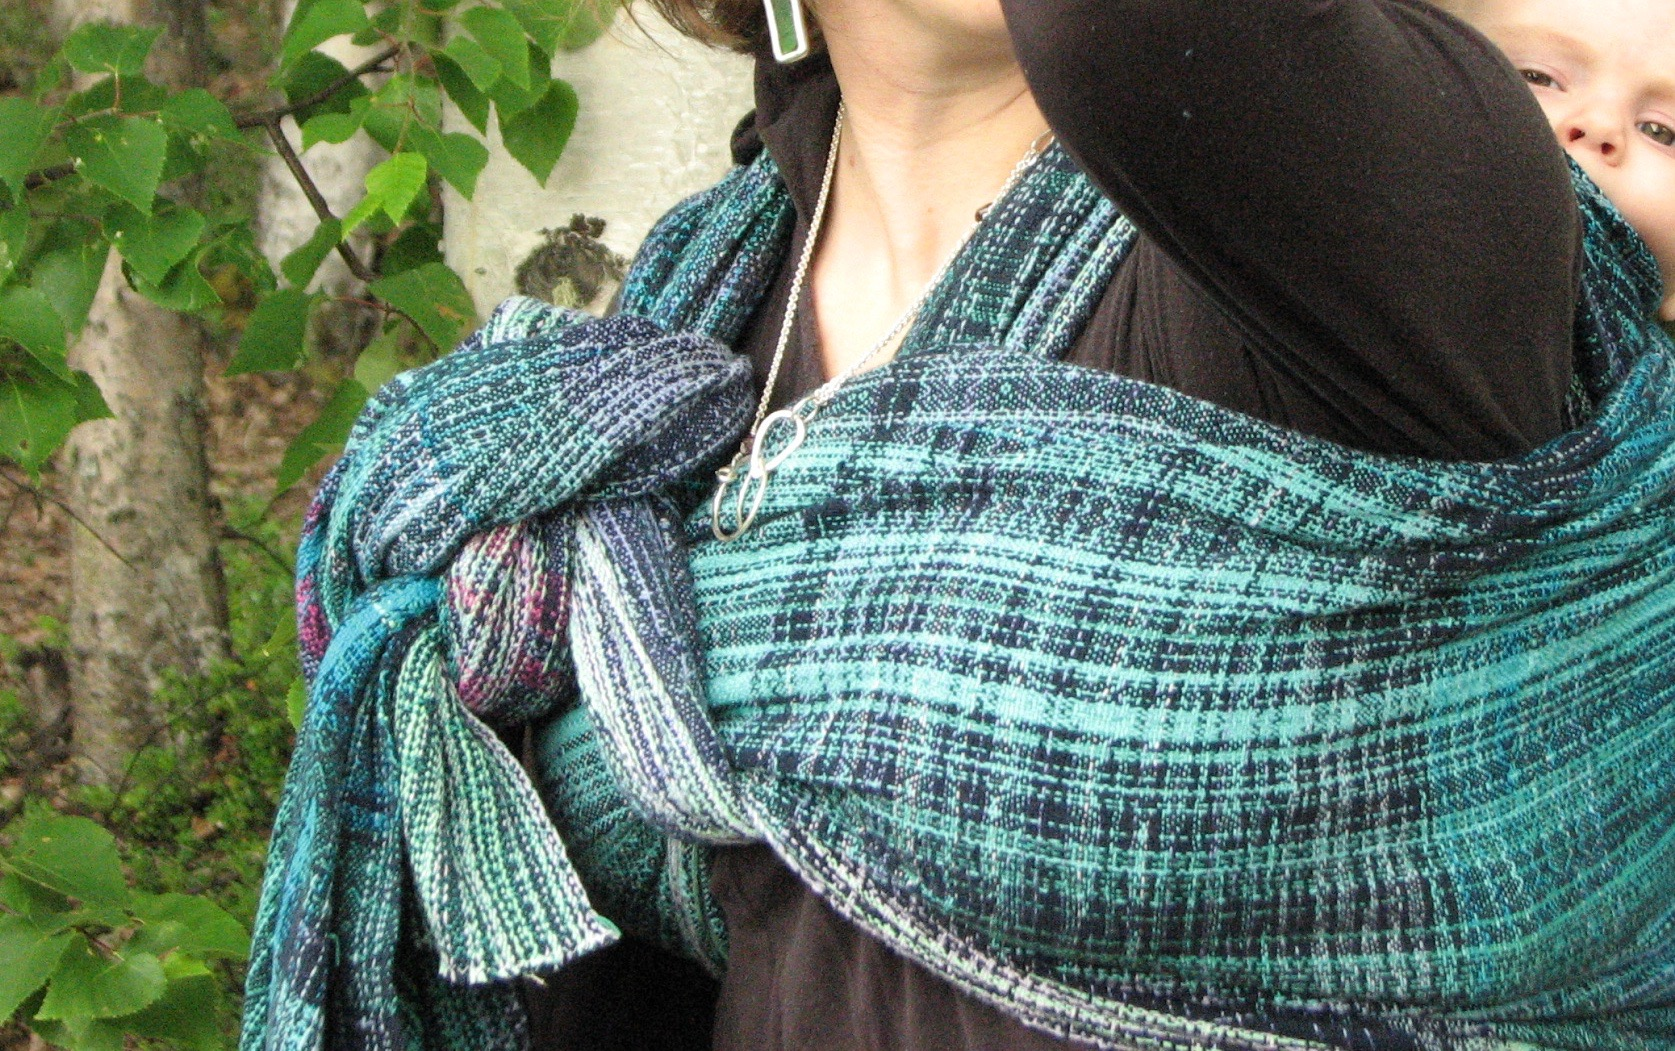 Fire in the Sky, a handwoven baby wrap inspired by the aurora borealis | 14 Mile Farm Handweaving and Homesteading in Alaska